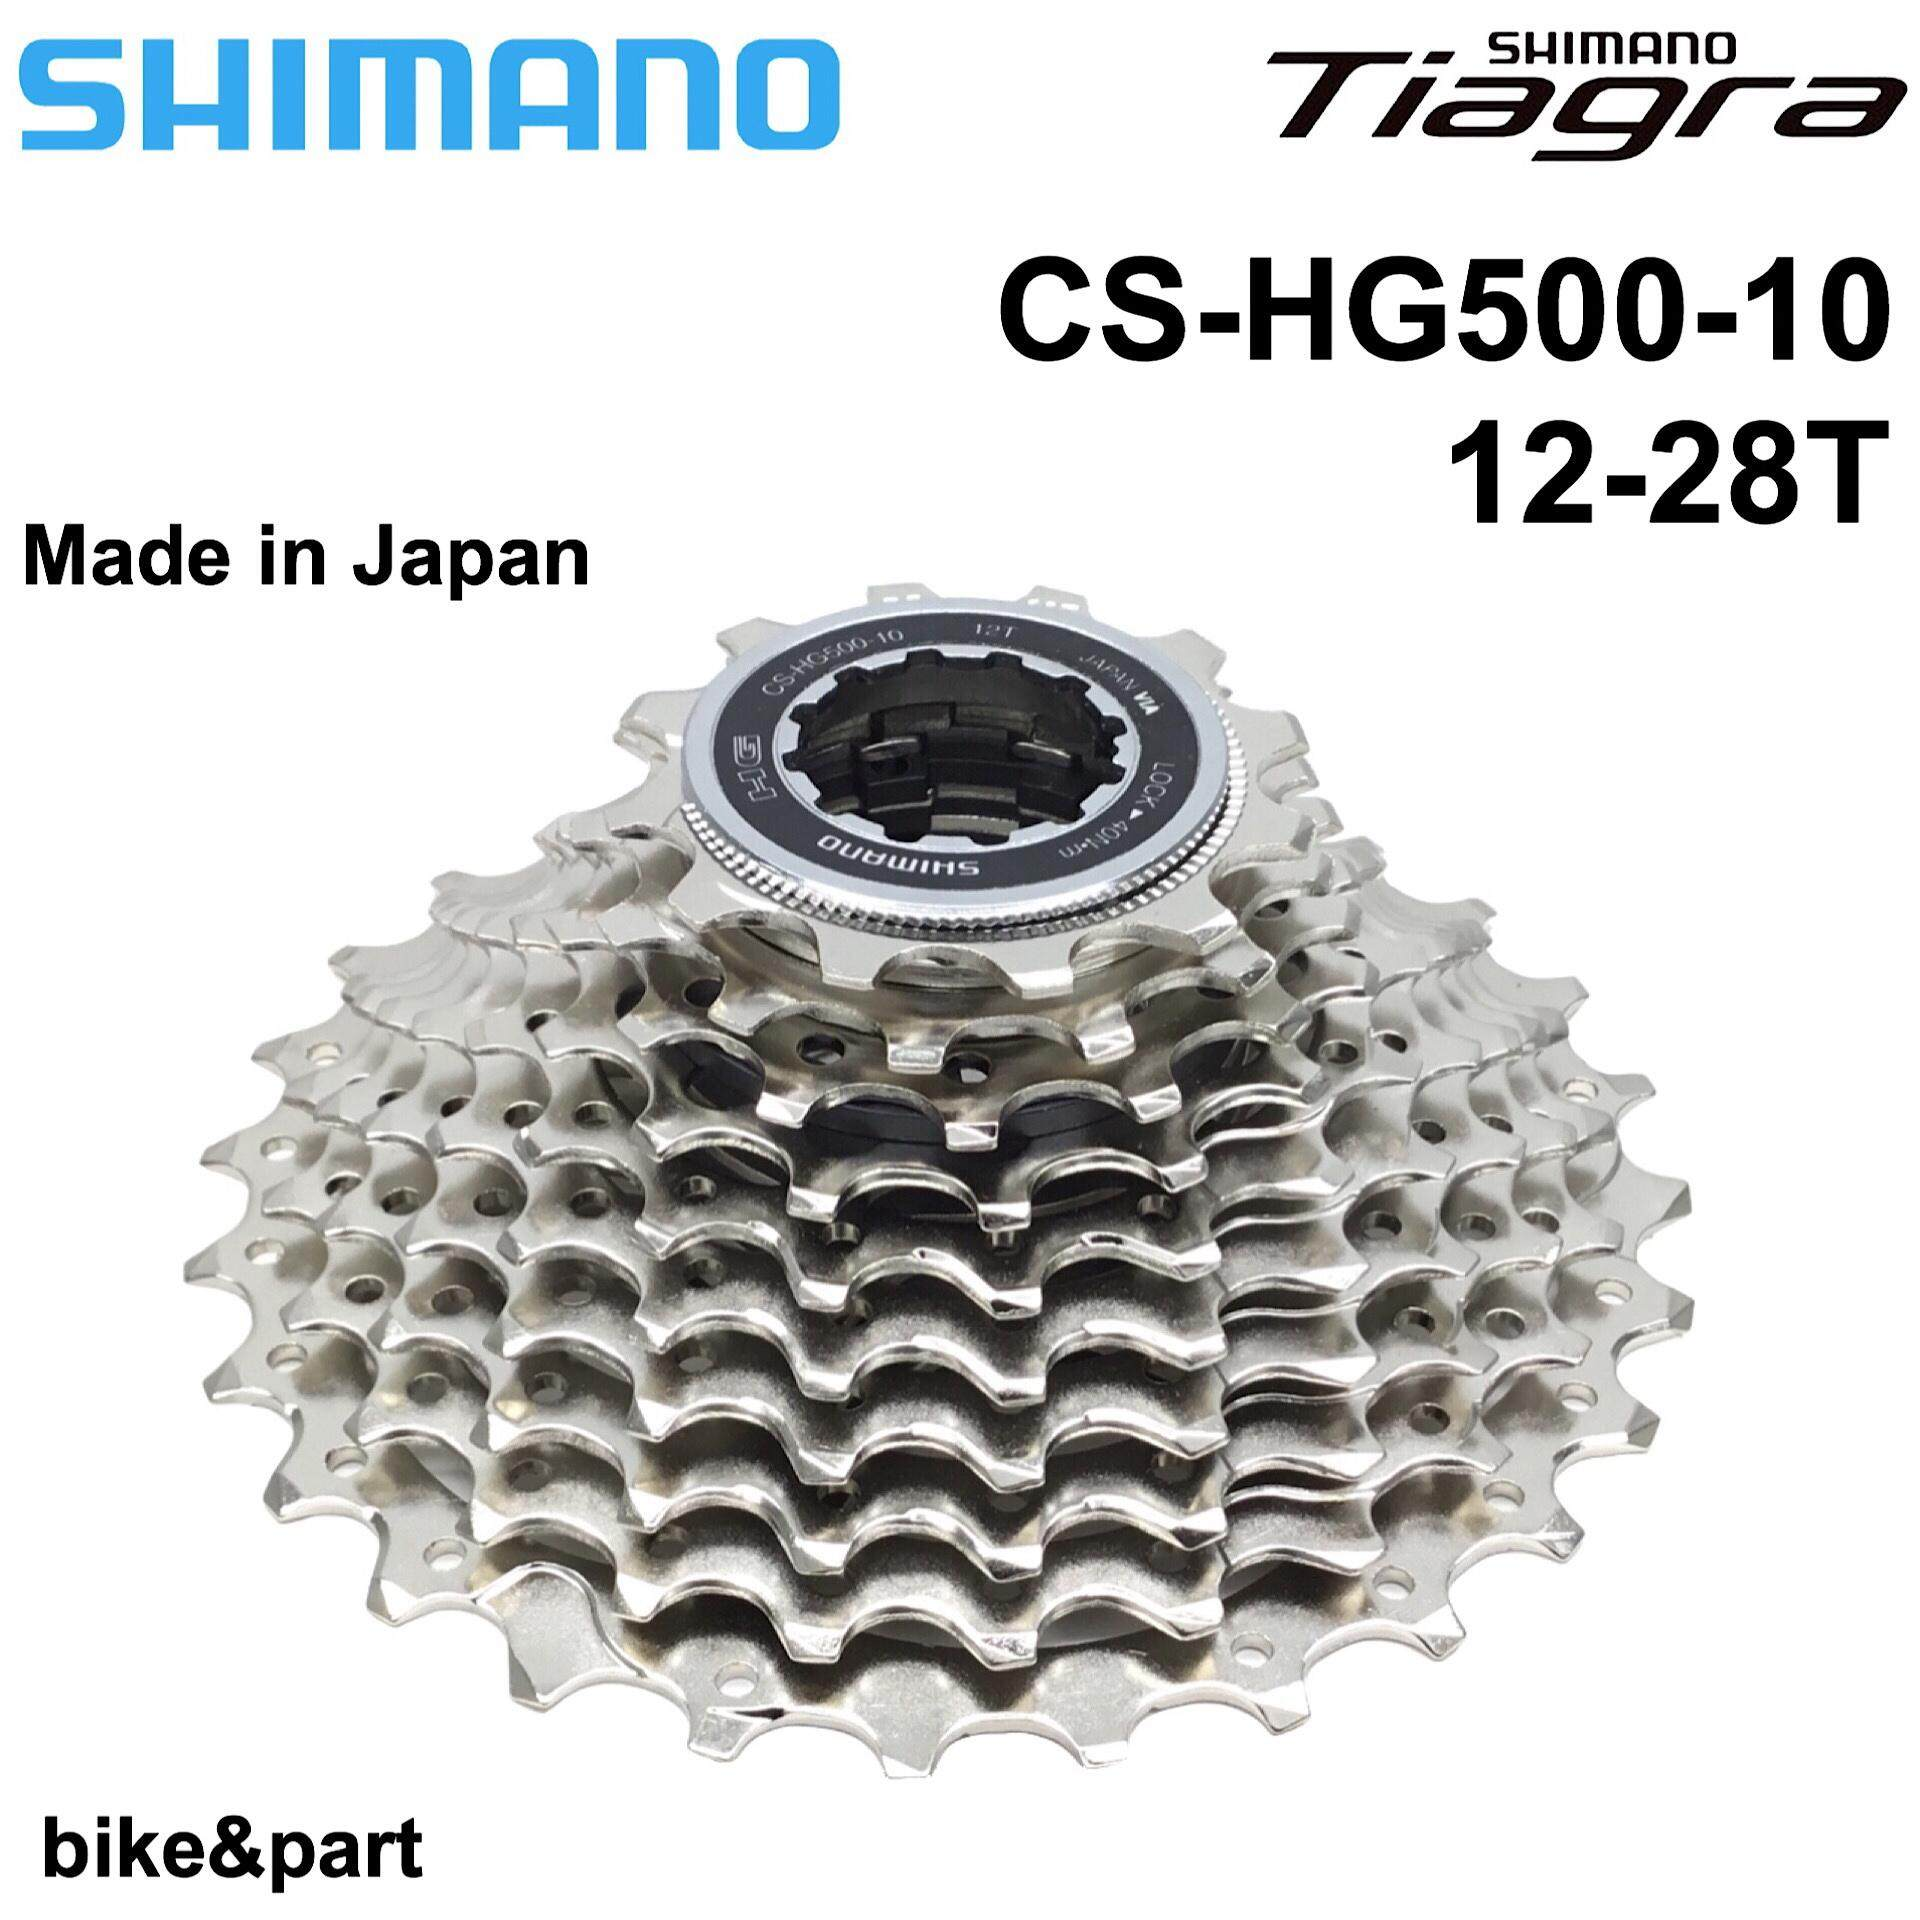 Shimano Claris CS-HG50-8 8-Speed Bicycle Cassette Sprocket Hyperglide 11-34T